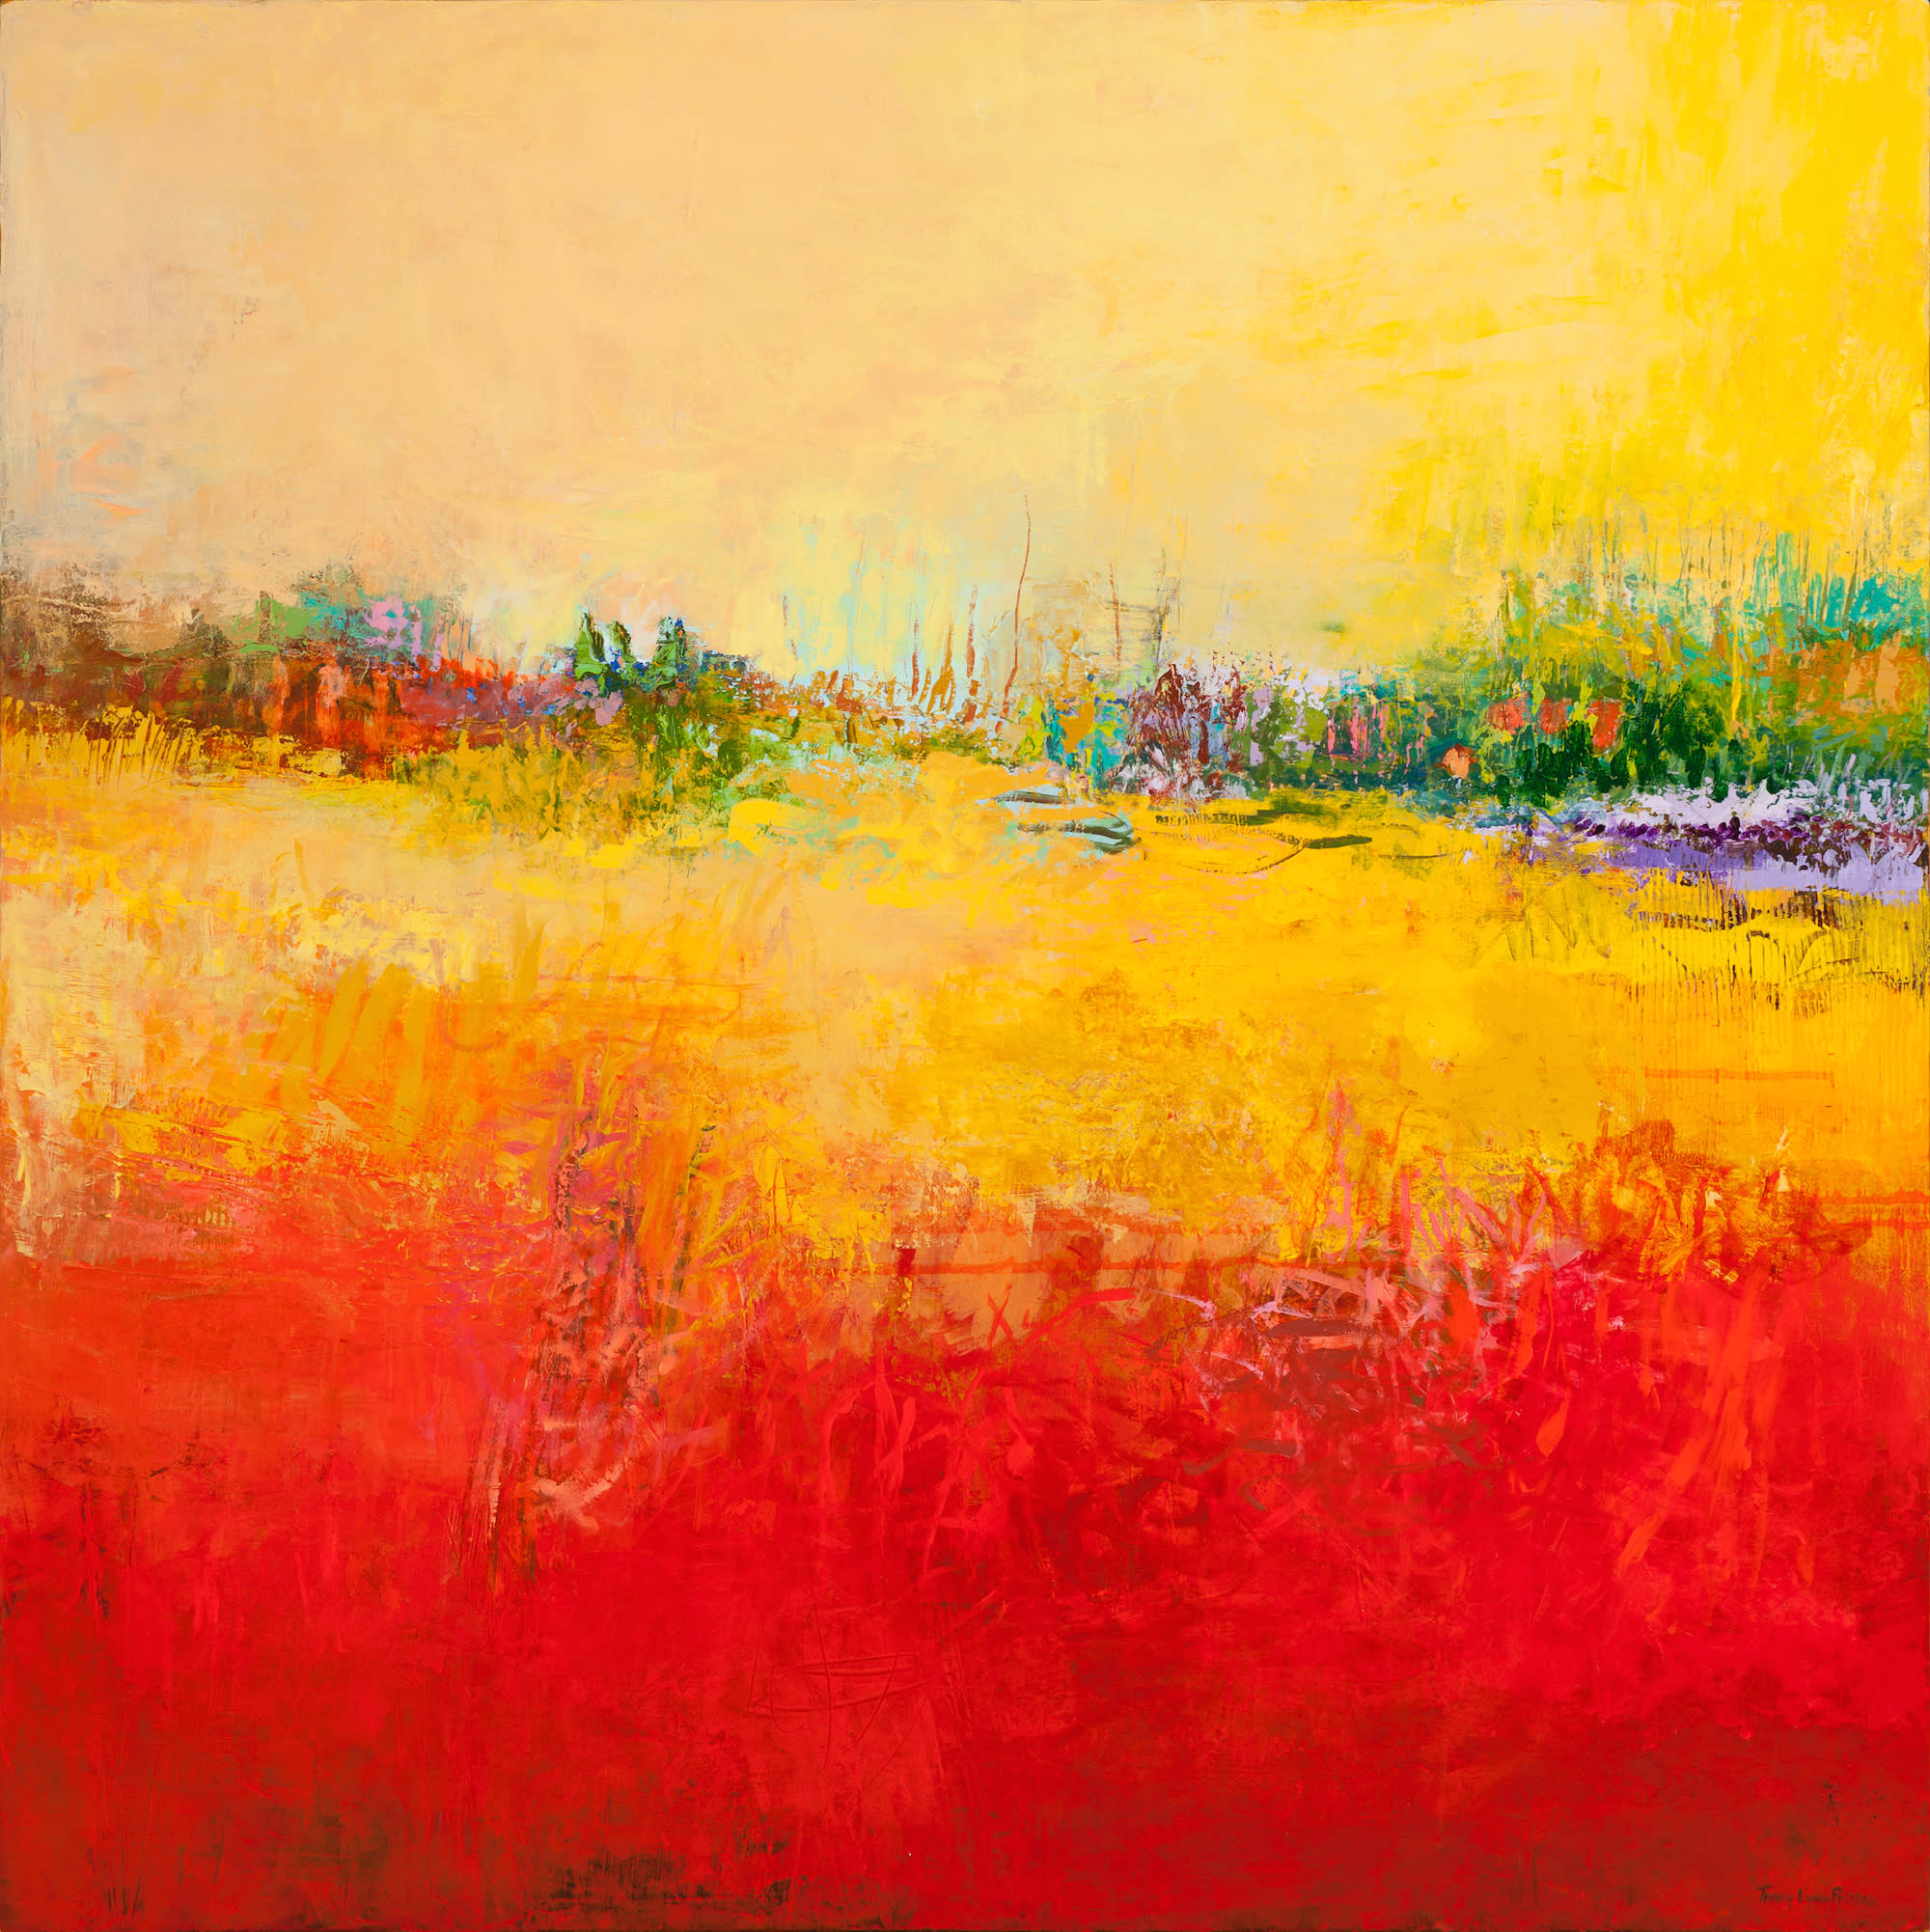 Tracy lynn pristas original paintings sold lucent immersion 48 x 48 b0xhcr